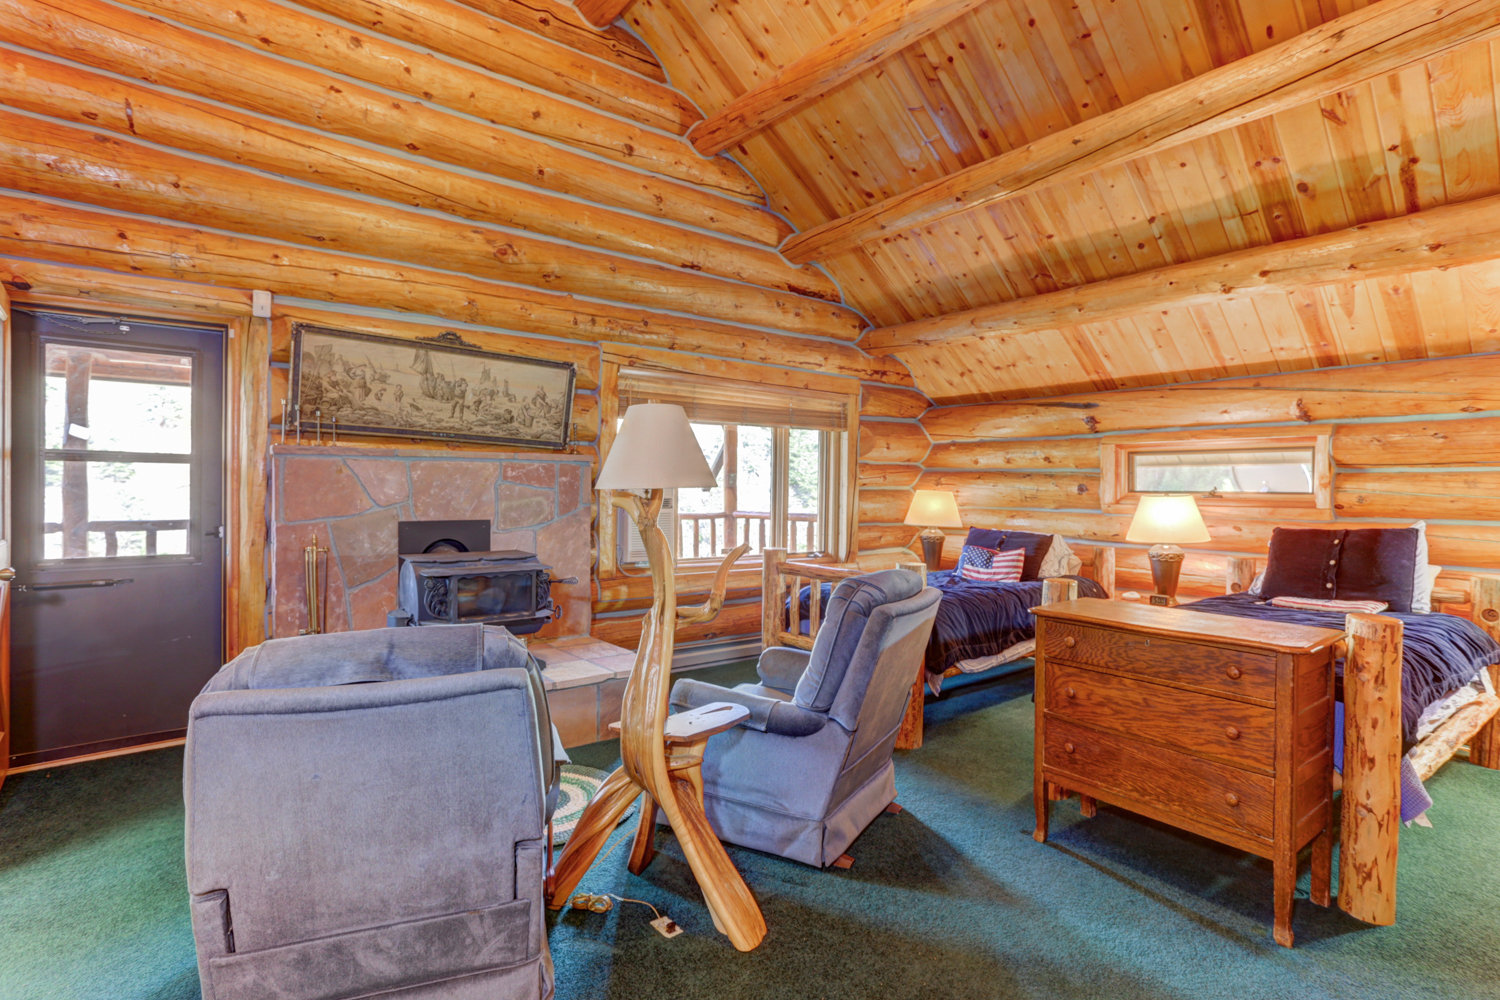 Wonderful image of Log Cabin on Nearly 10 Acres KL Realty with #884020 color and 1500x1000 pixels